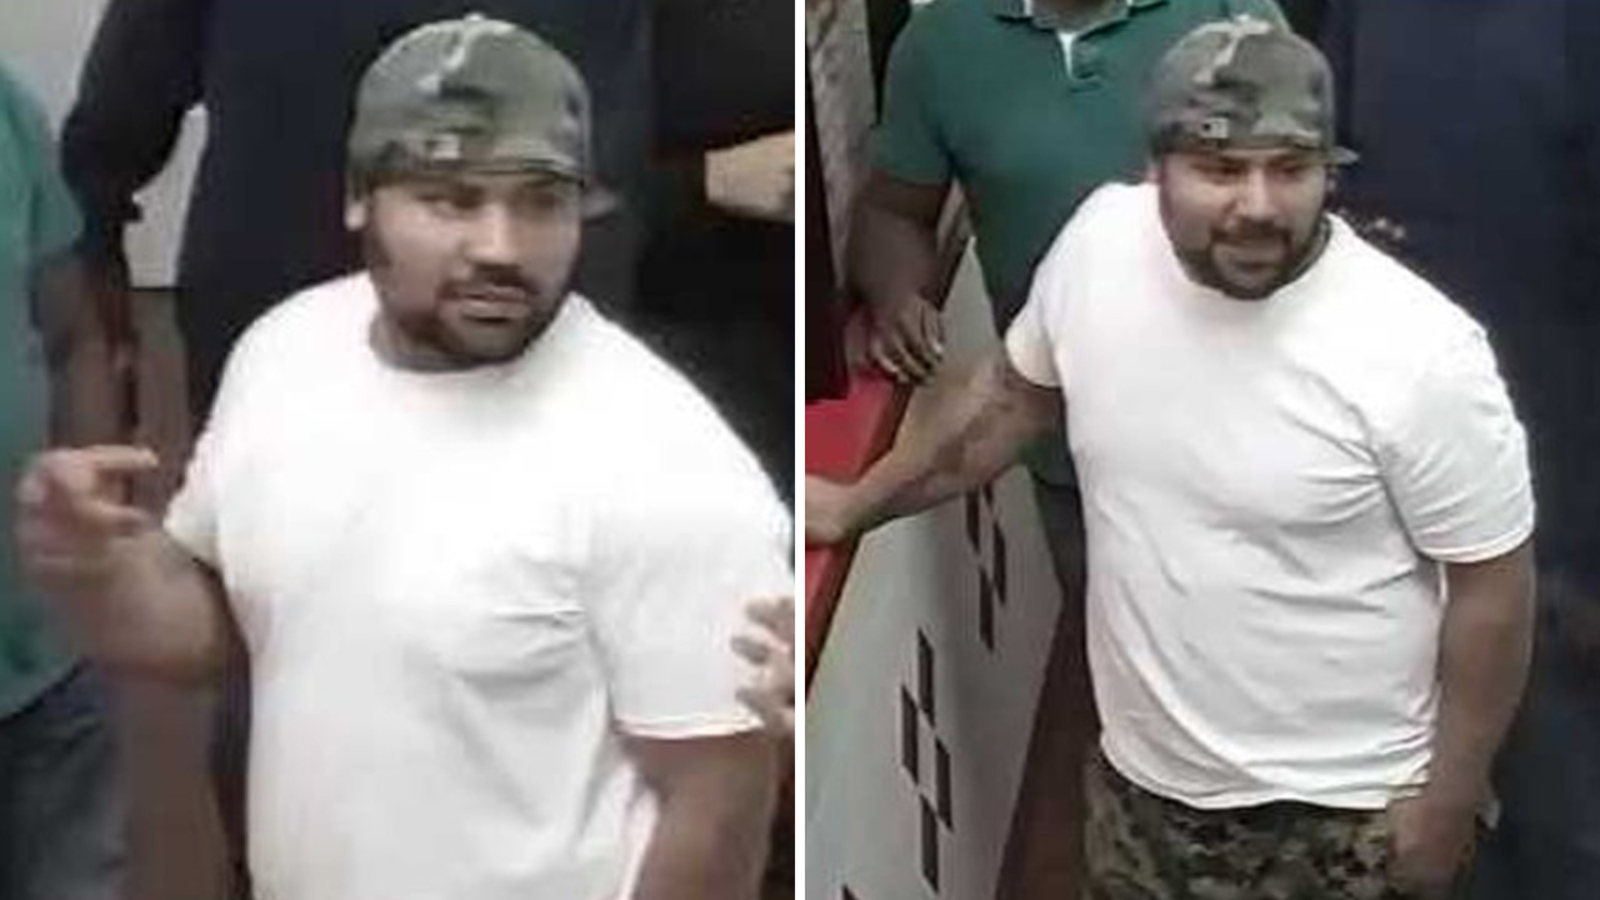 Man visiting Bronx from Alabama dies after punch in face; Police search for attacker